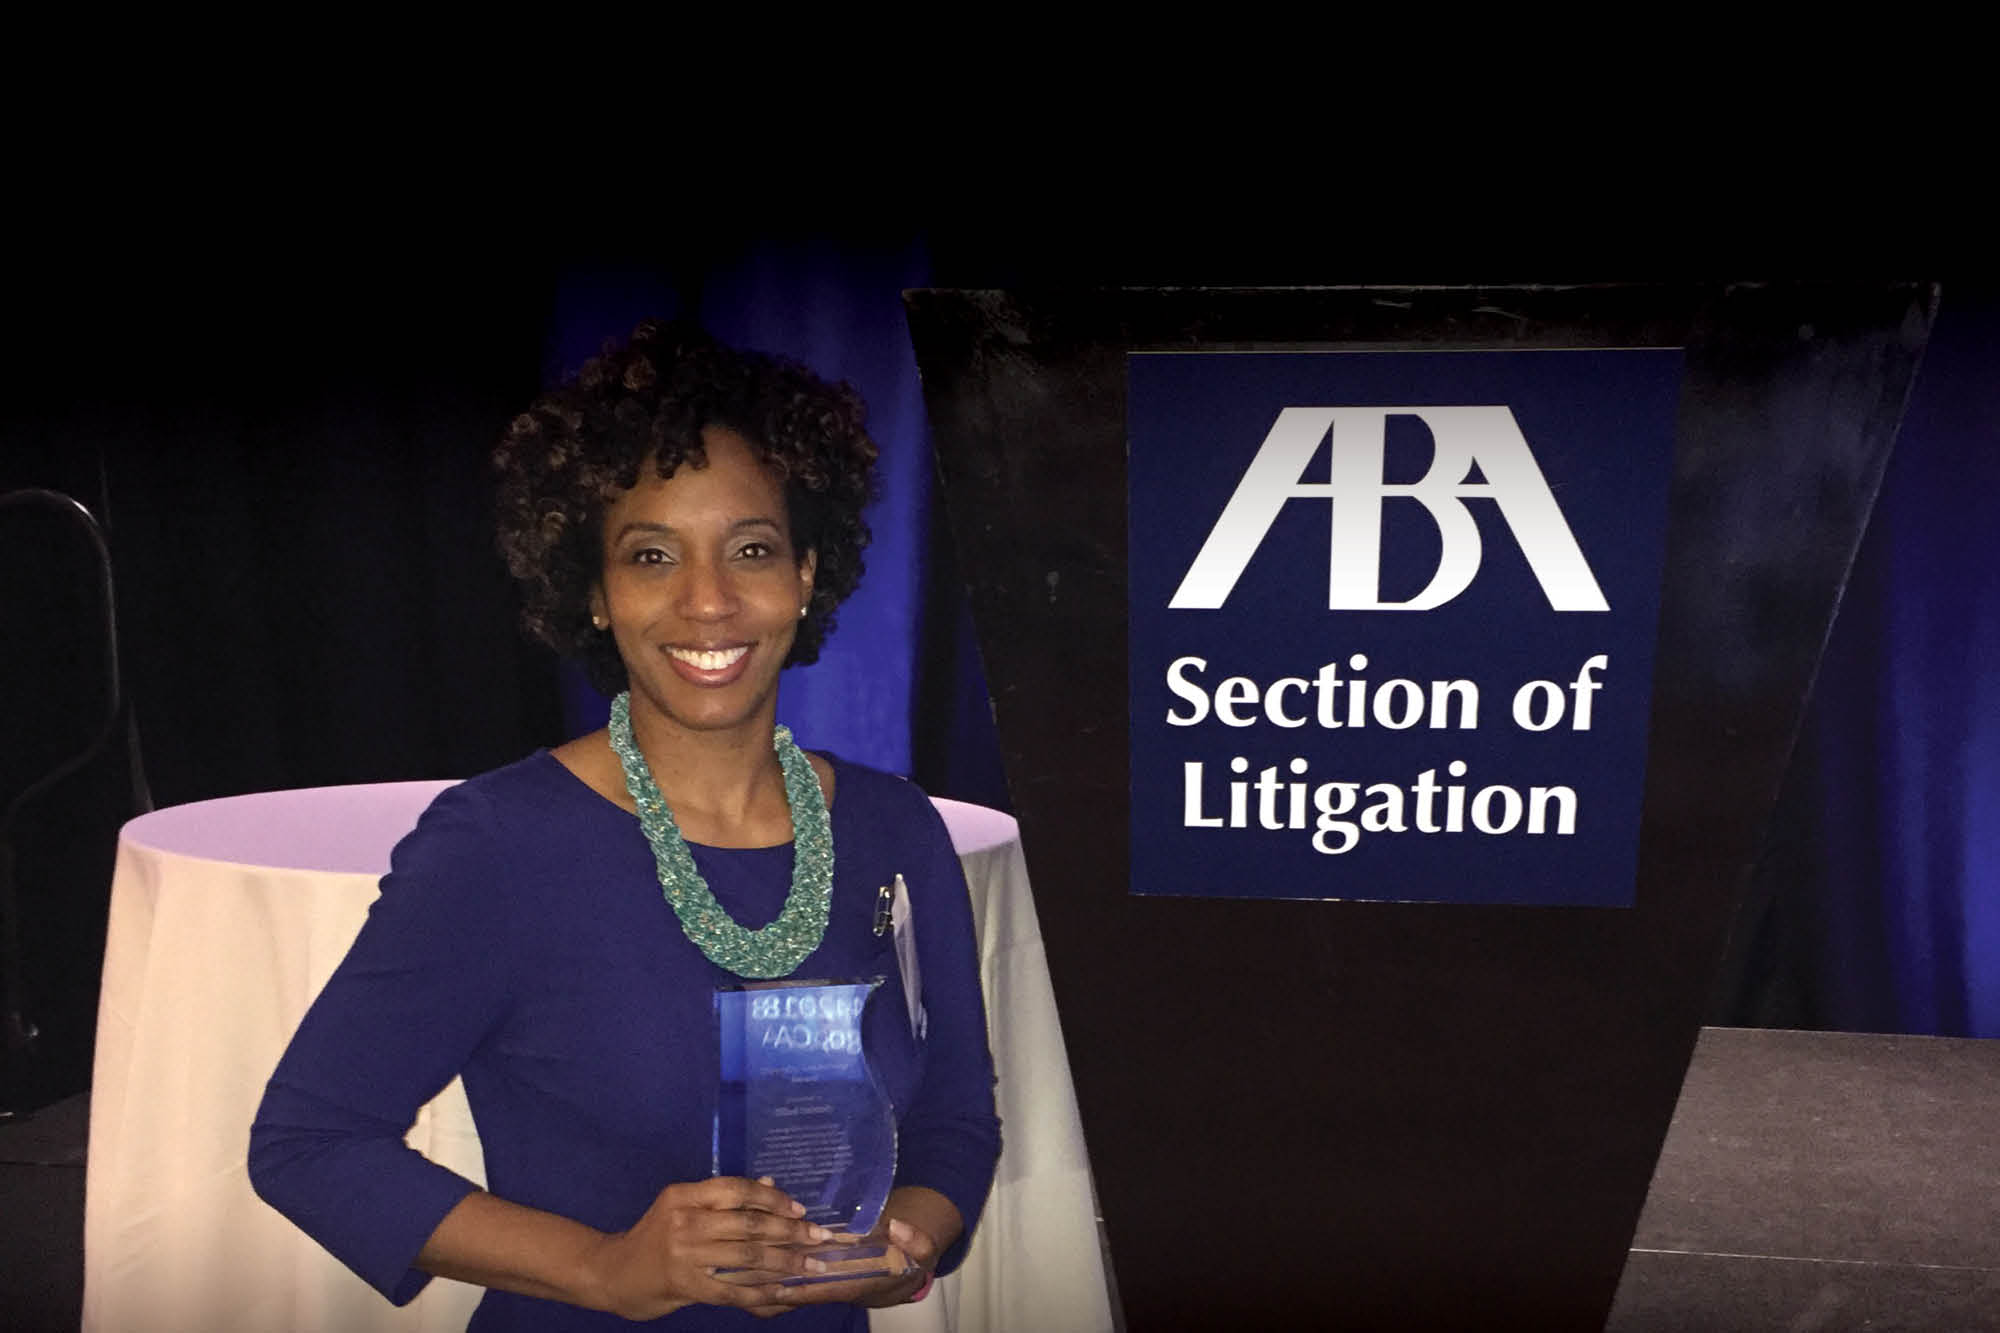 Pre-law Program Earns Top Honors from the American Bar Association